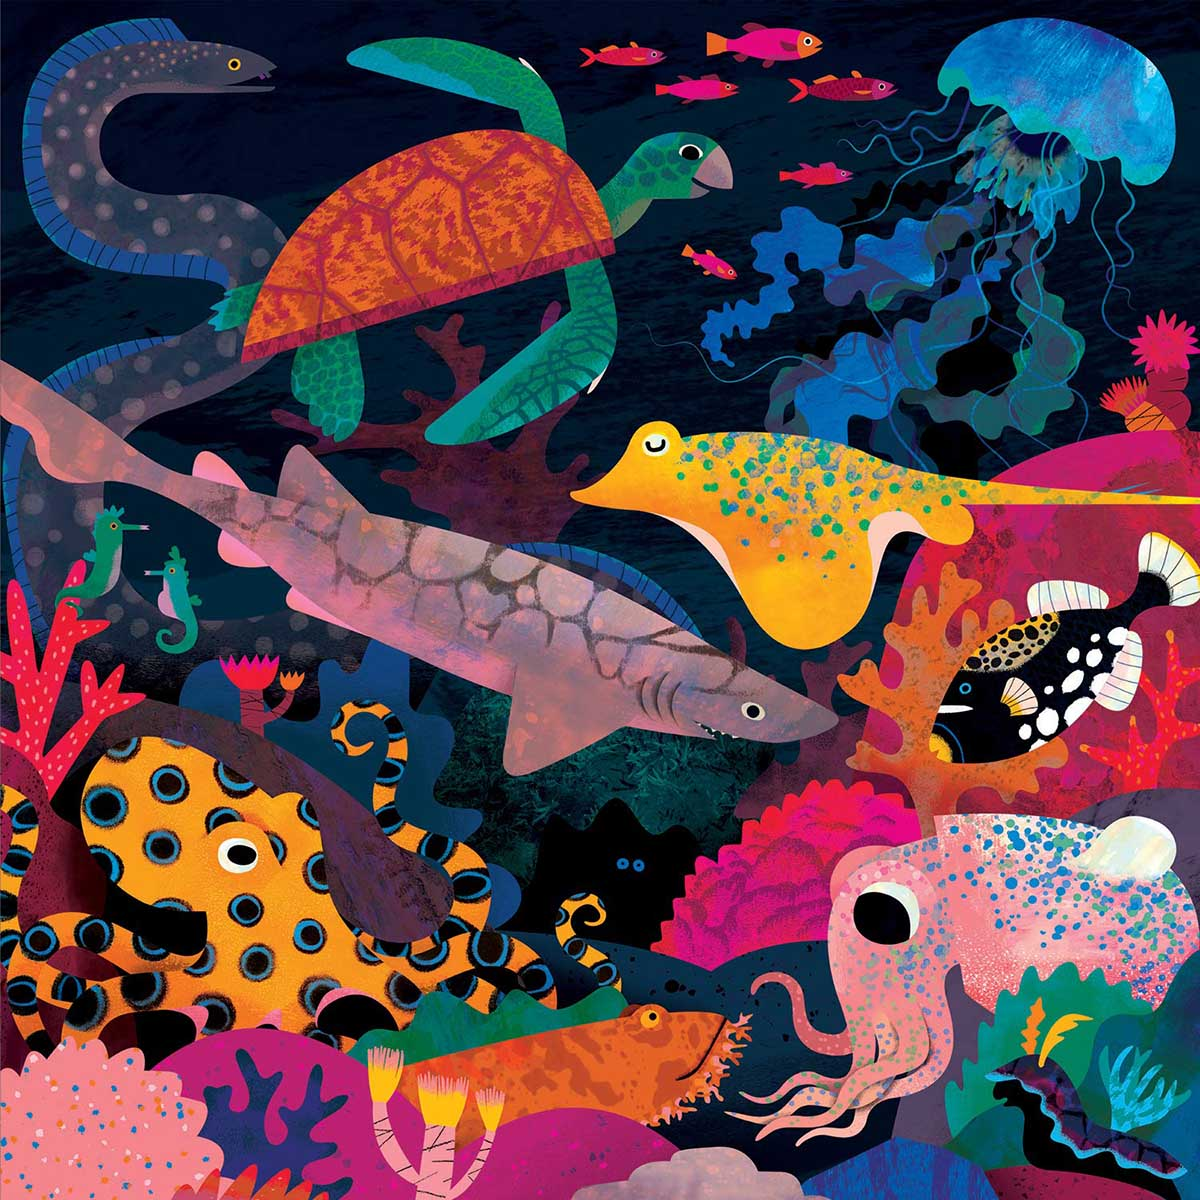 Ocean Illuminated Animals Glow in the Dark Puzzle